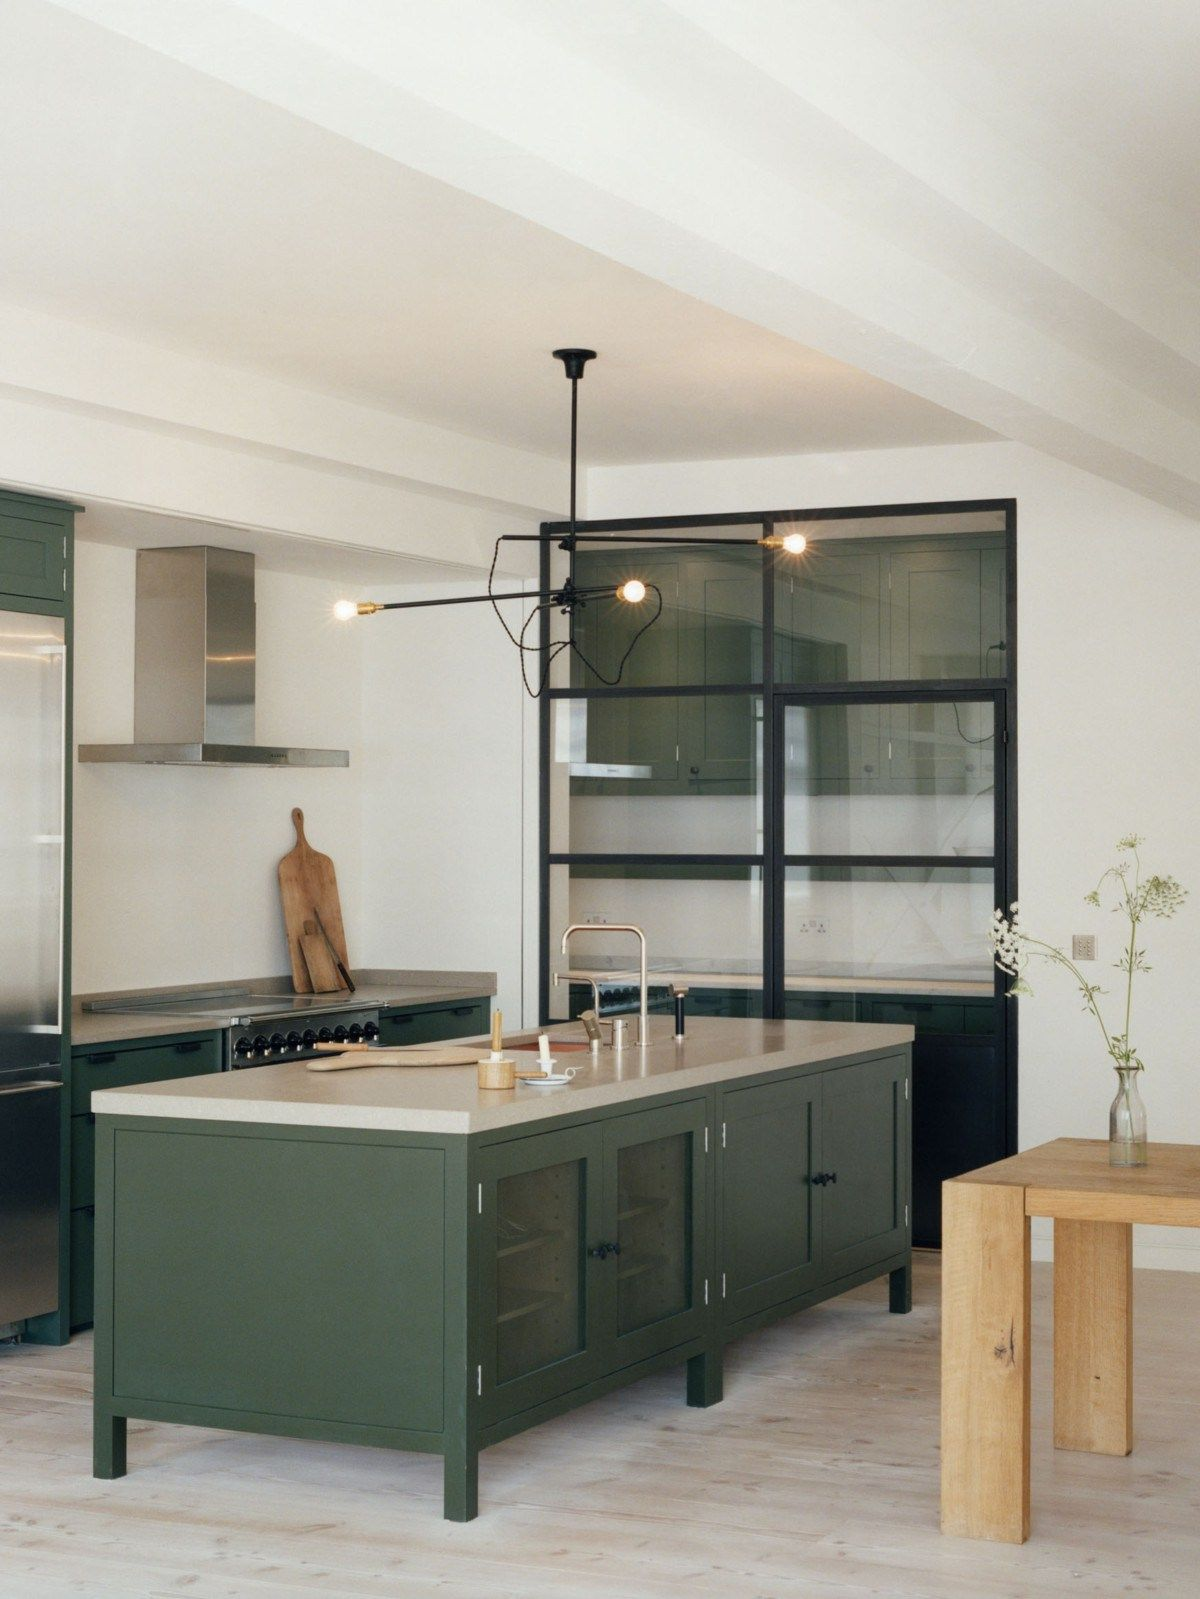 Green kitchen inspiration amp ideas metcalfemakeovers kitchens for